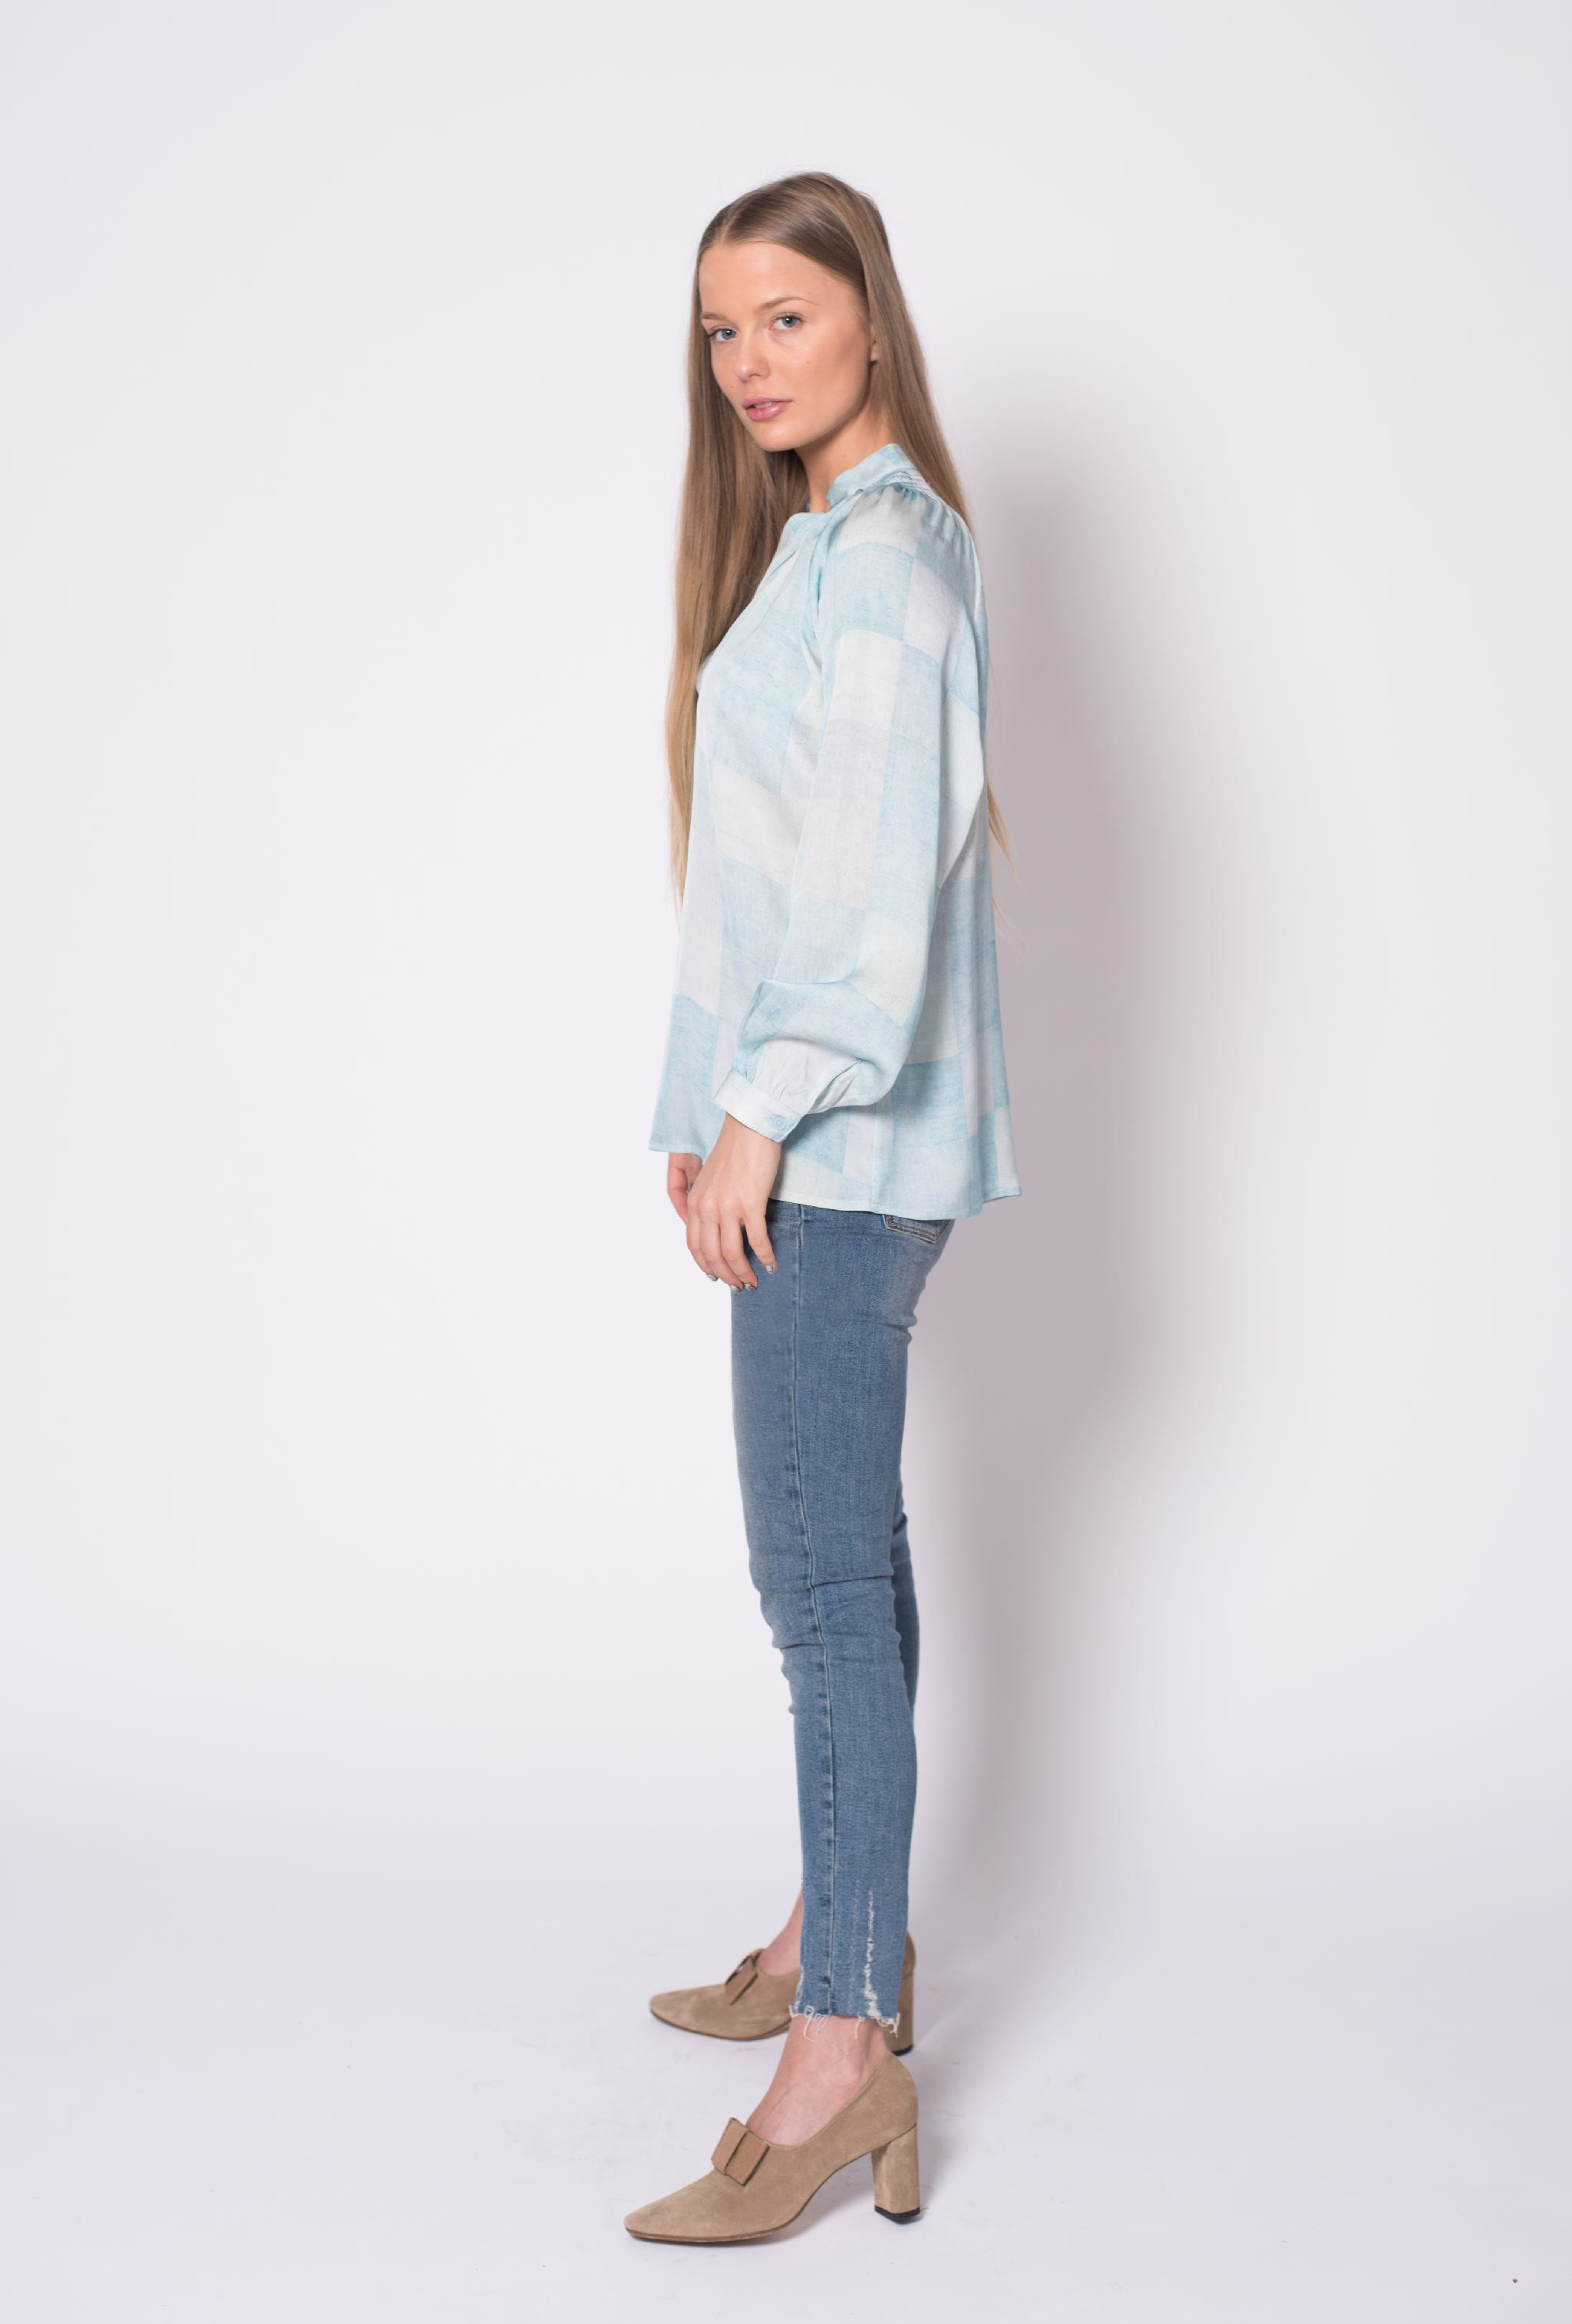 The Long Sleeve Polo Blouse | Pastel Pastiche